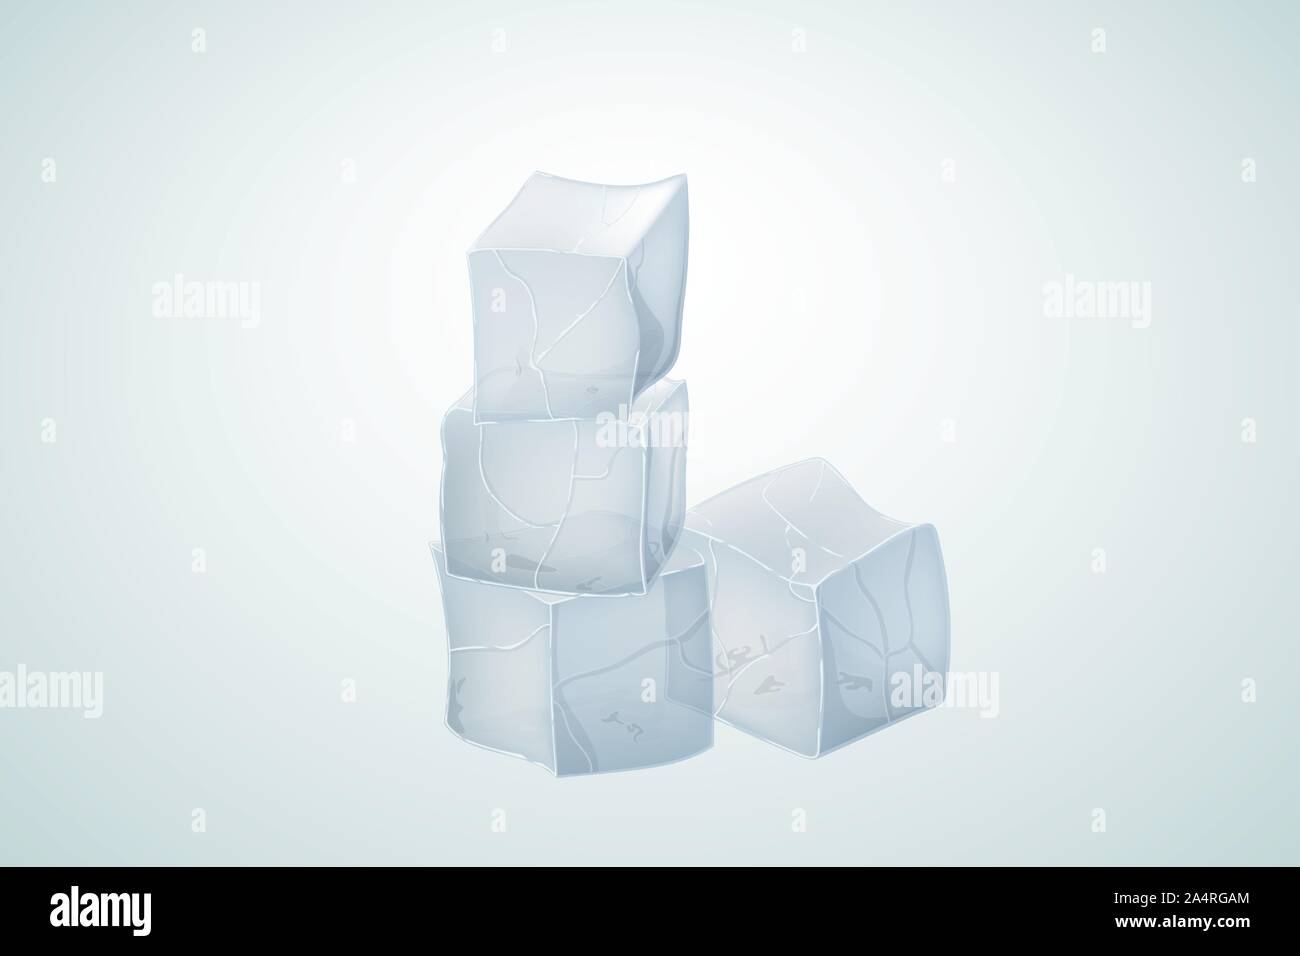 Translucent ice cubes for alcoholic beverage. Vector illustration. Stock Vector